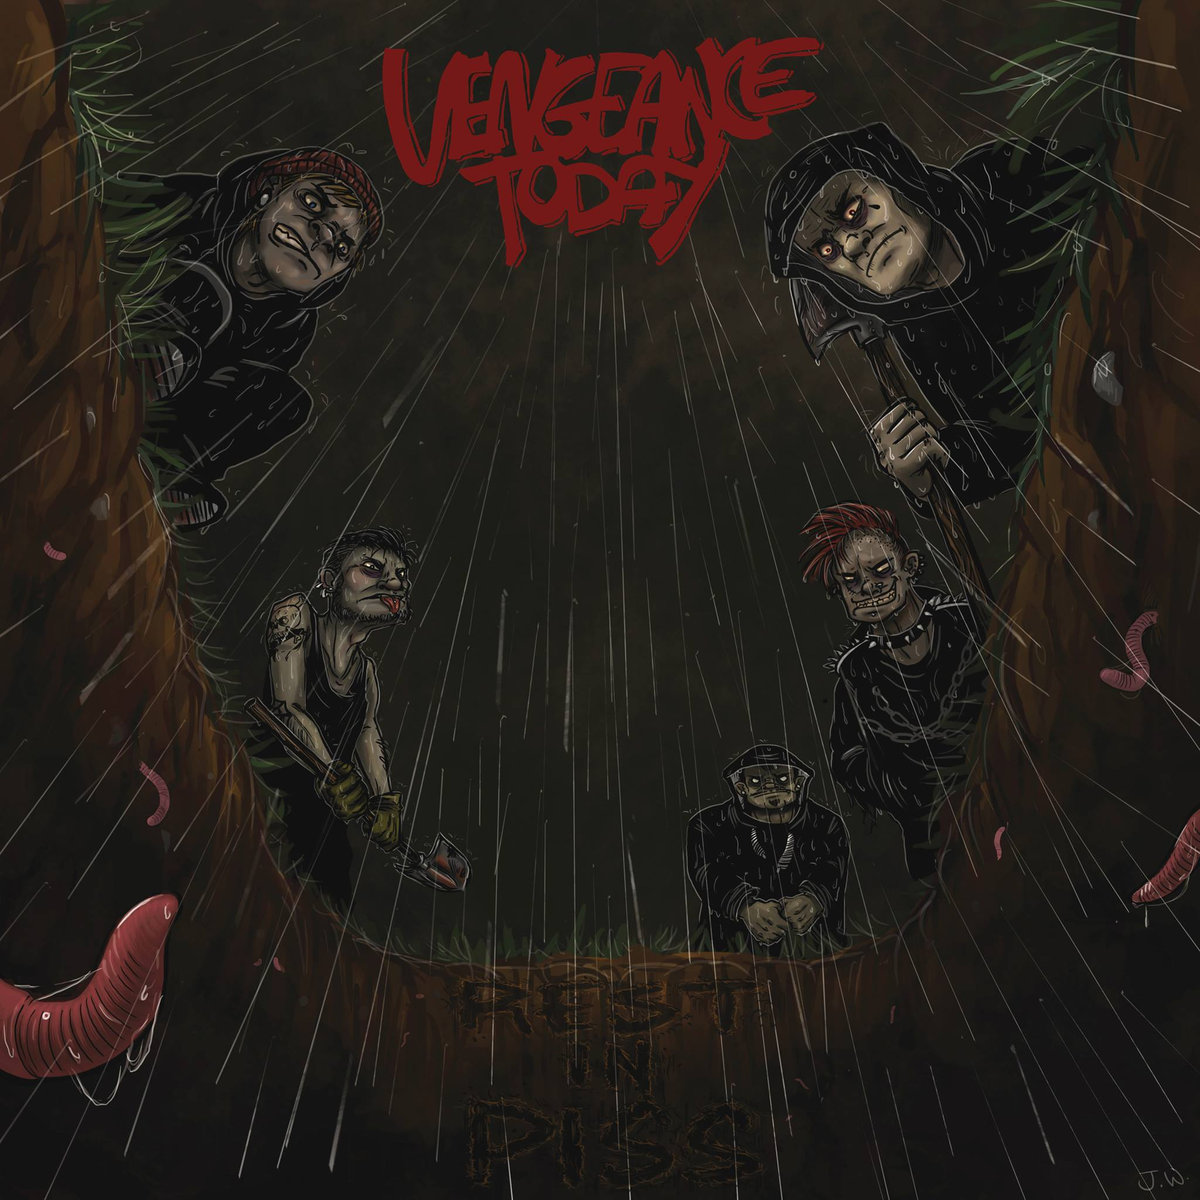 Vengeance Today - Rest in piss 7